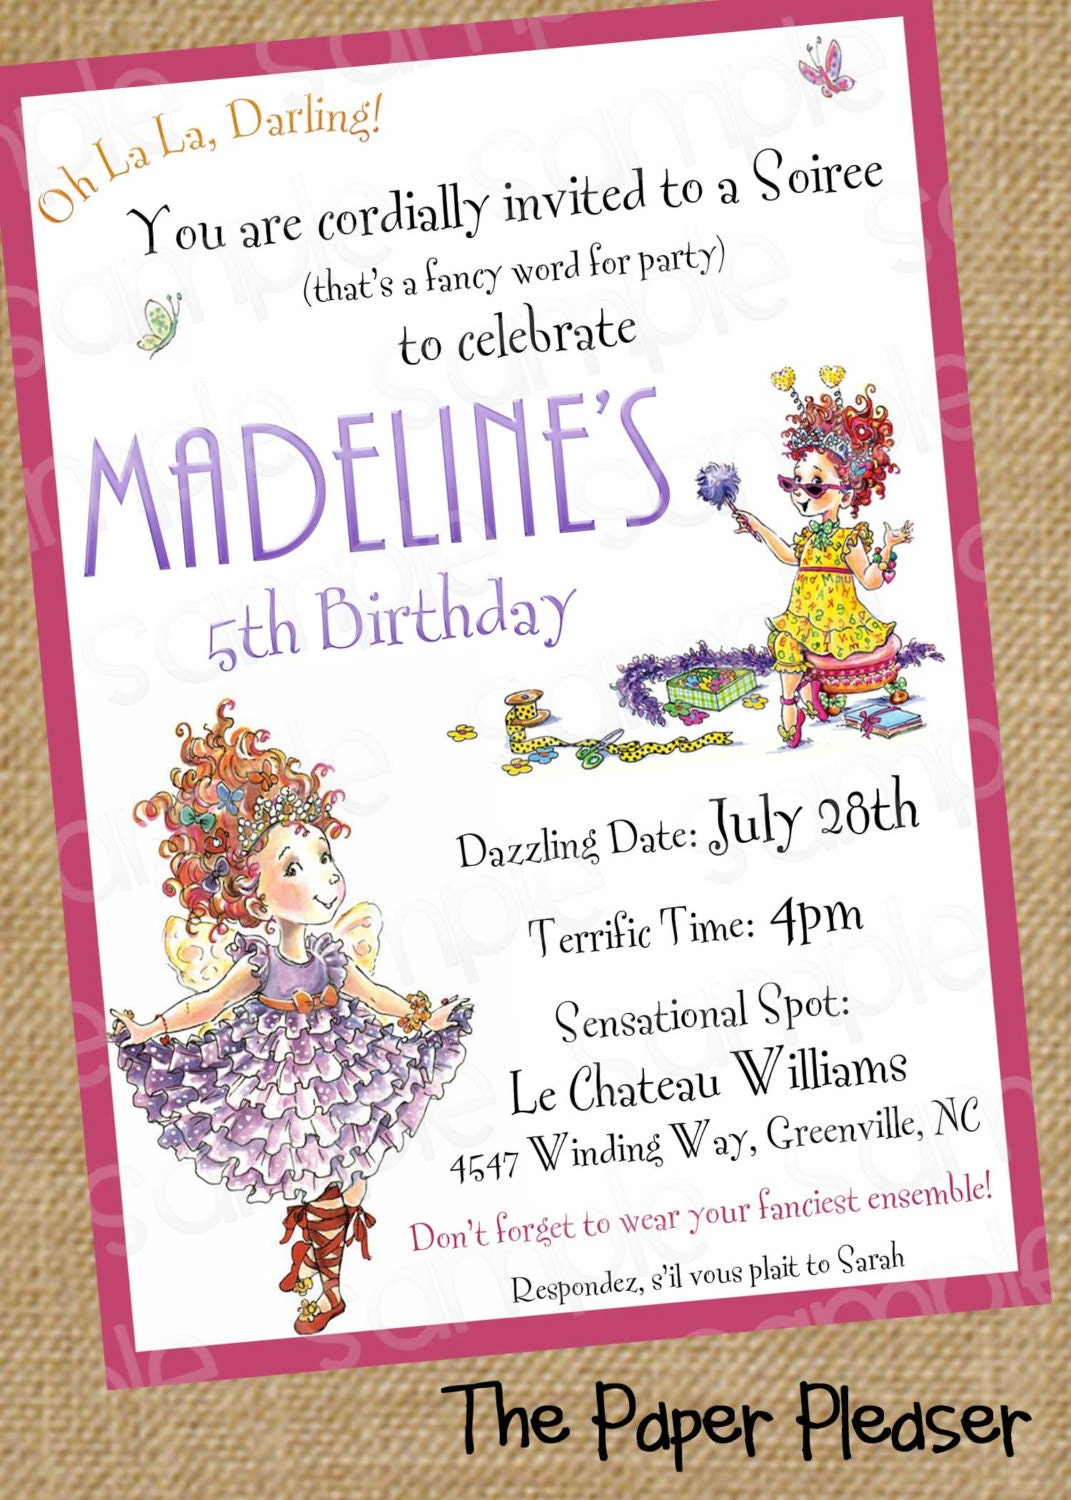 It's just an image of Clean Imprintable Birthday Invitations